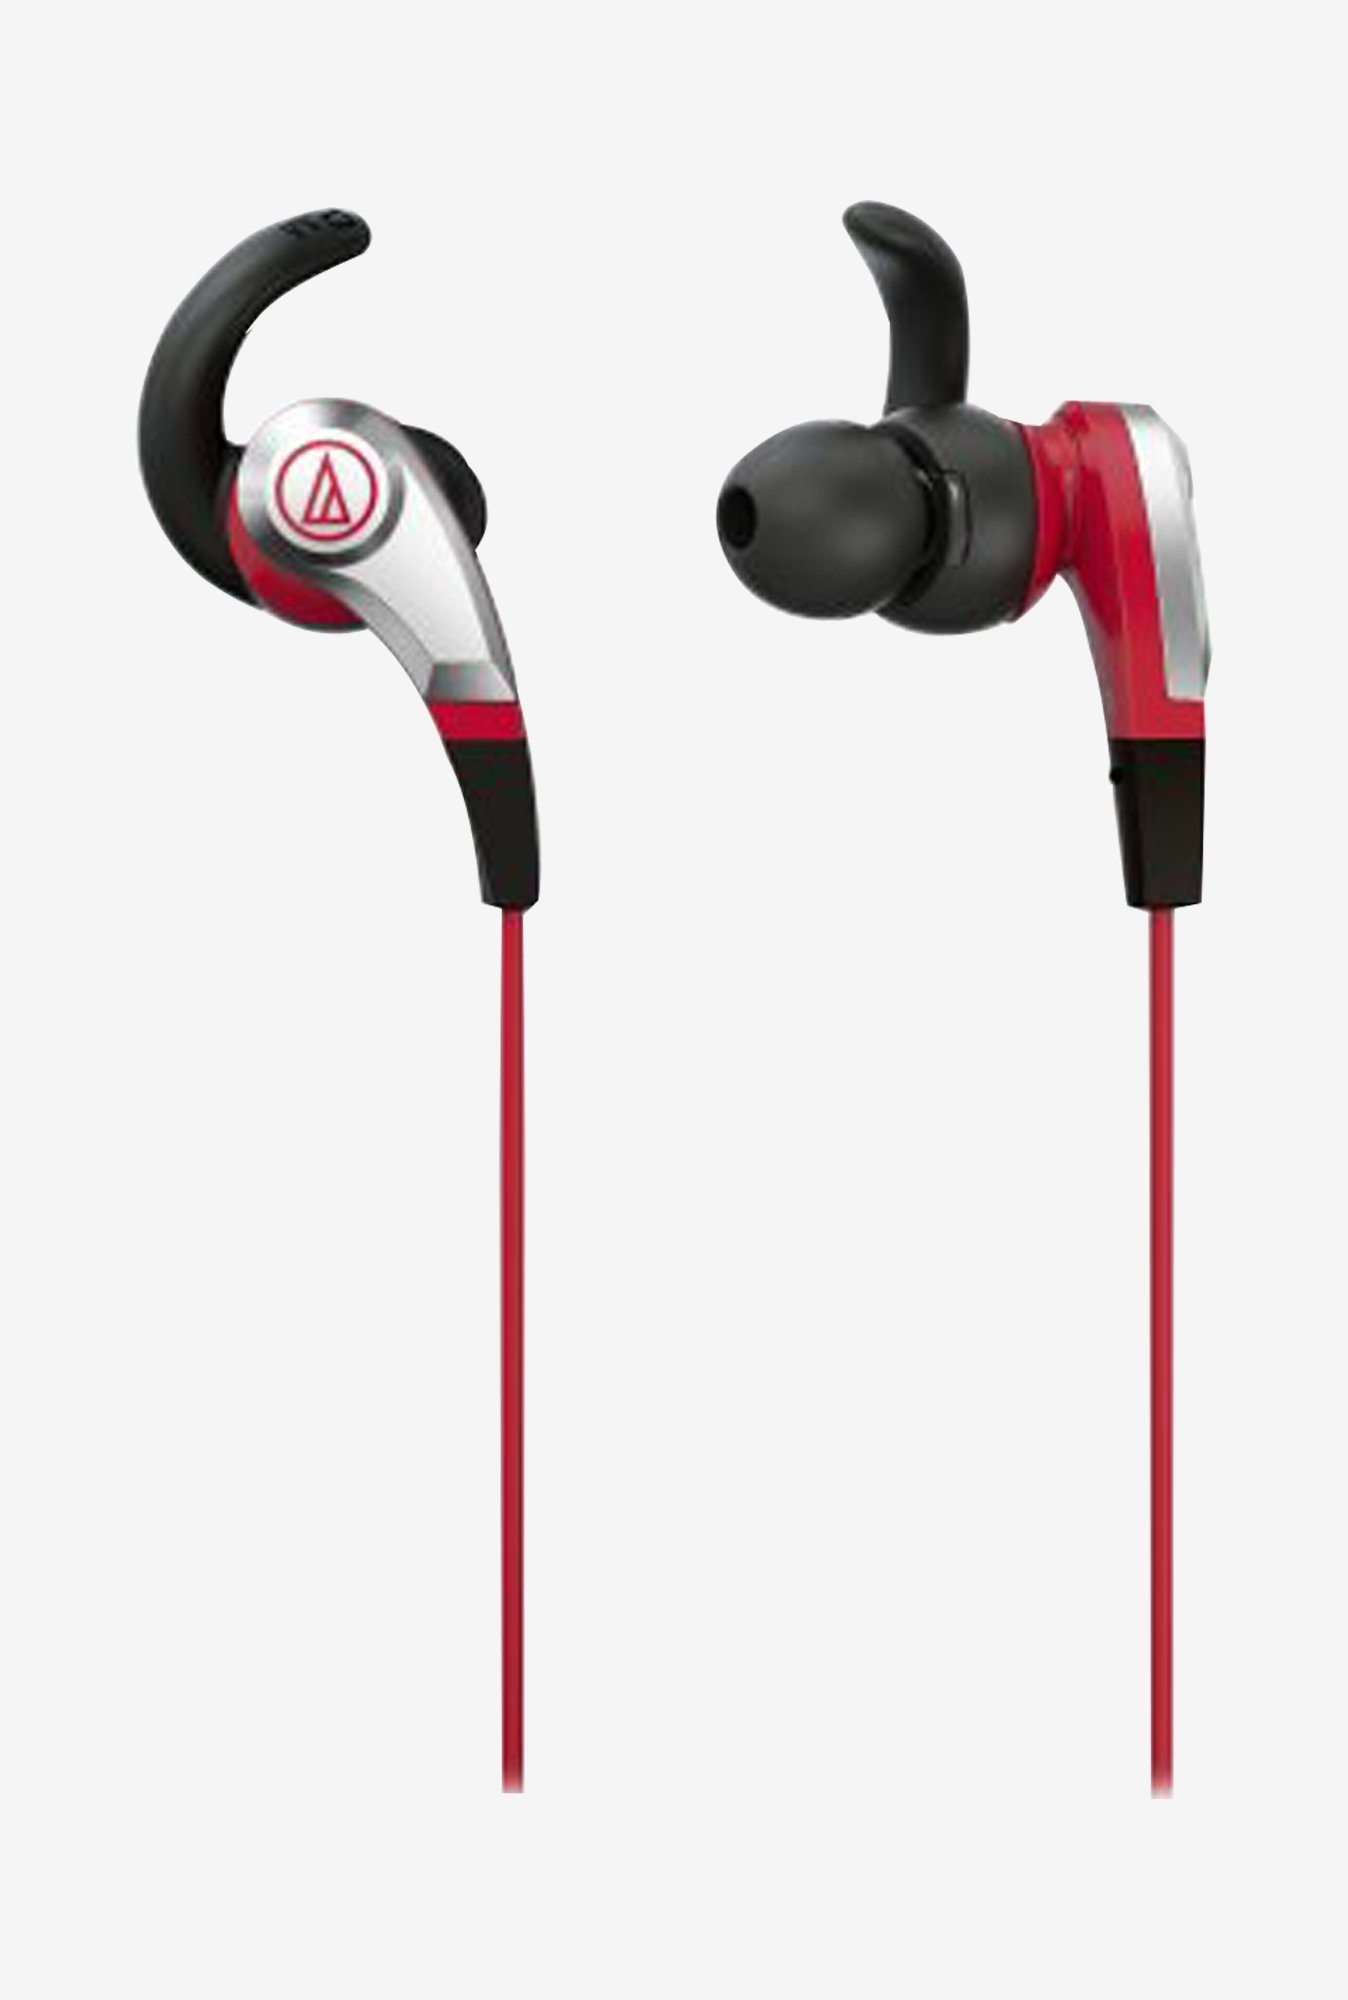 Audio Technica ATH-CKX5 RD Sonic Fuel headphones (Red)